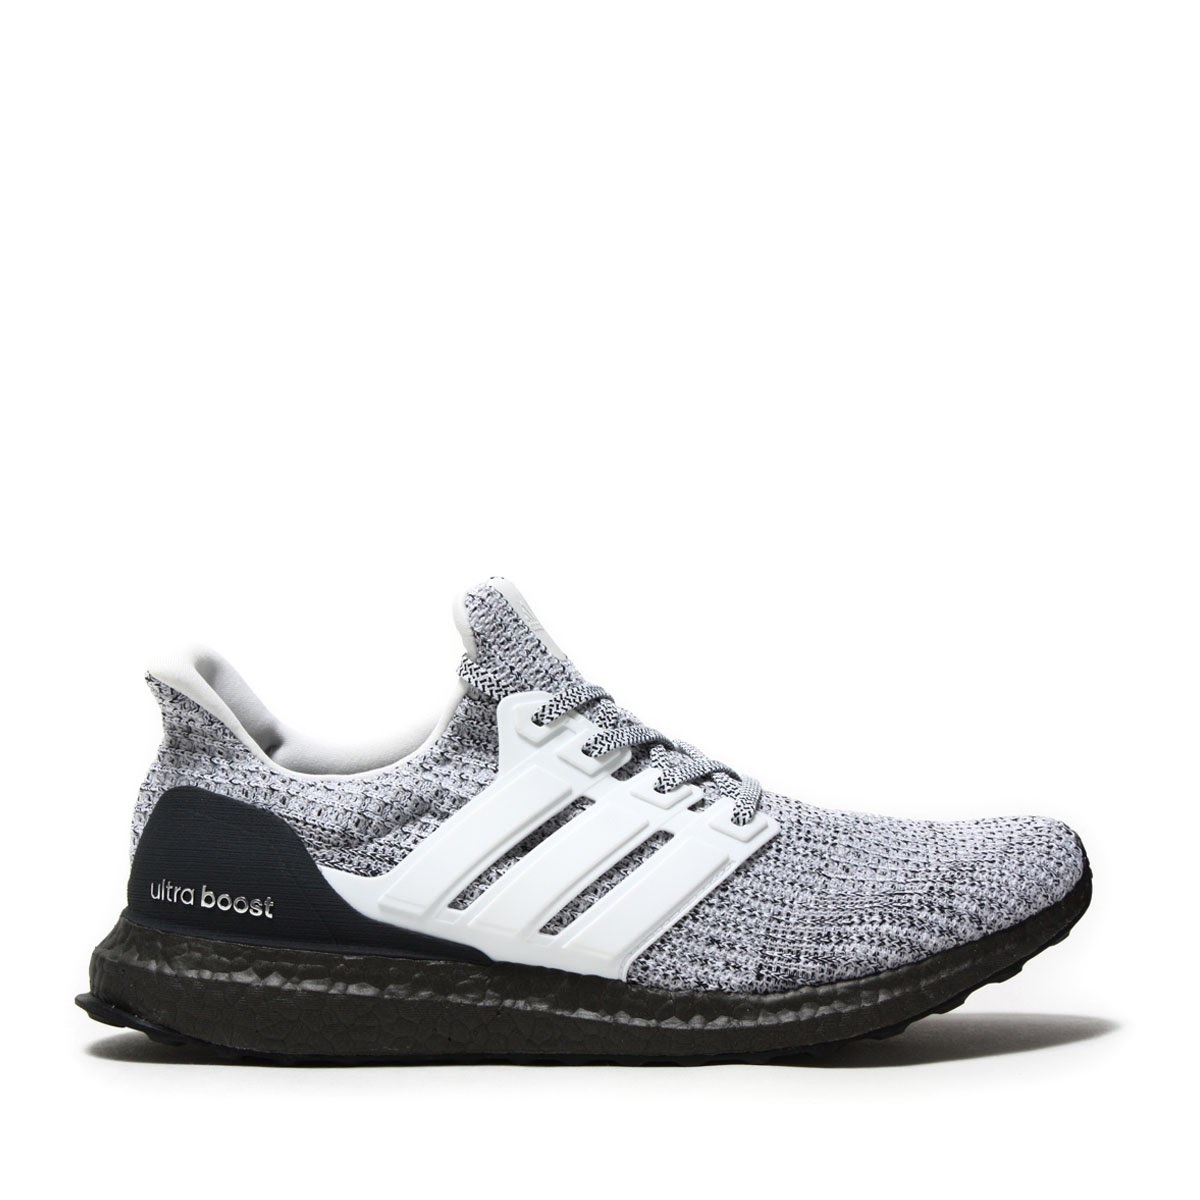 66b718545abe1 adidas UltraBOOST LTD (Adidas ultra boost LTD) White White Grey Two 18SS-S